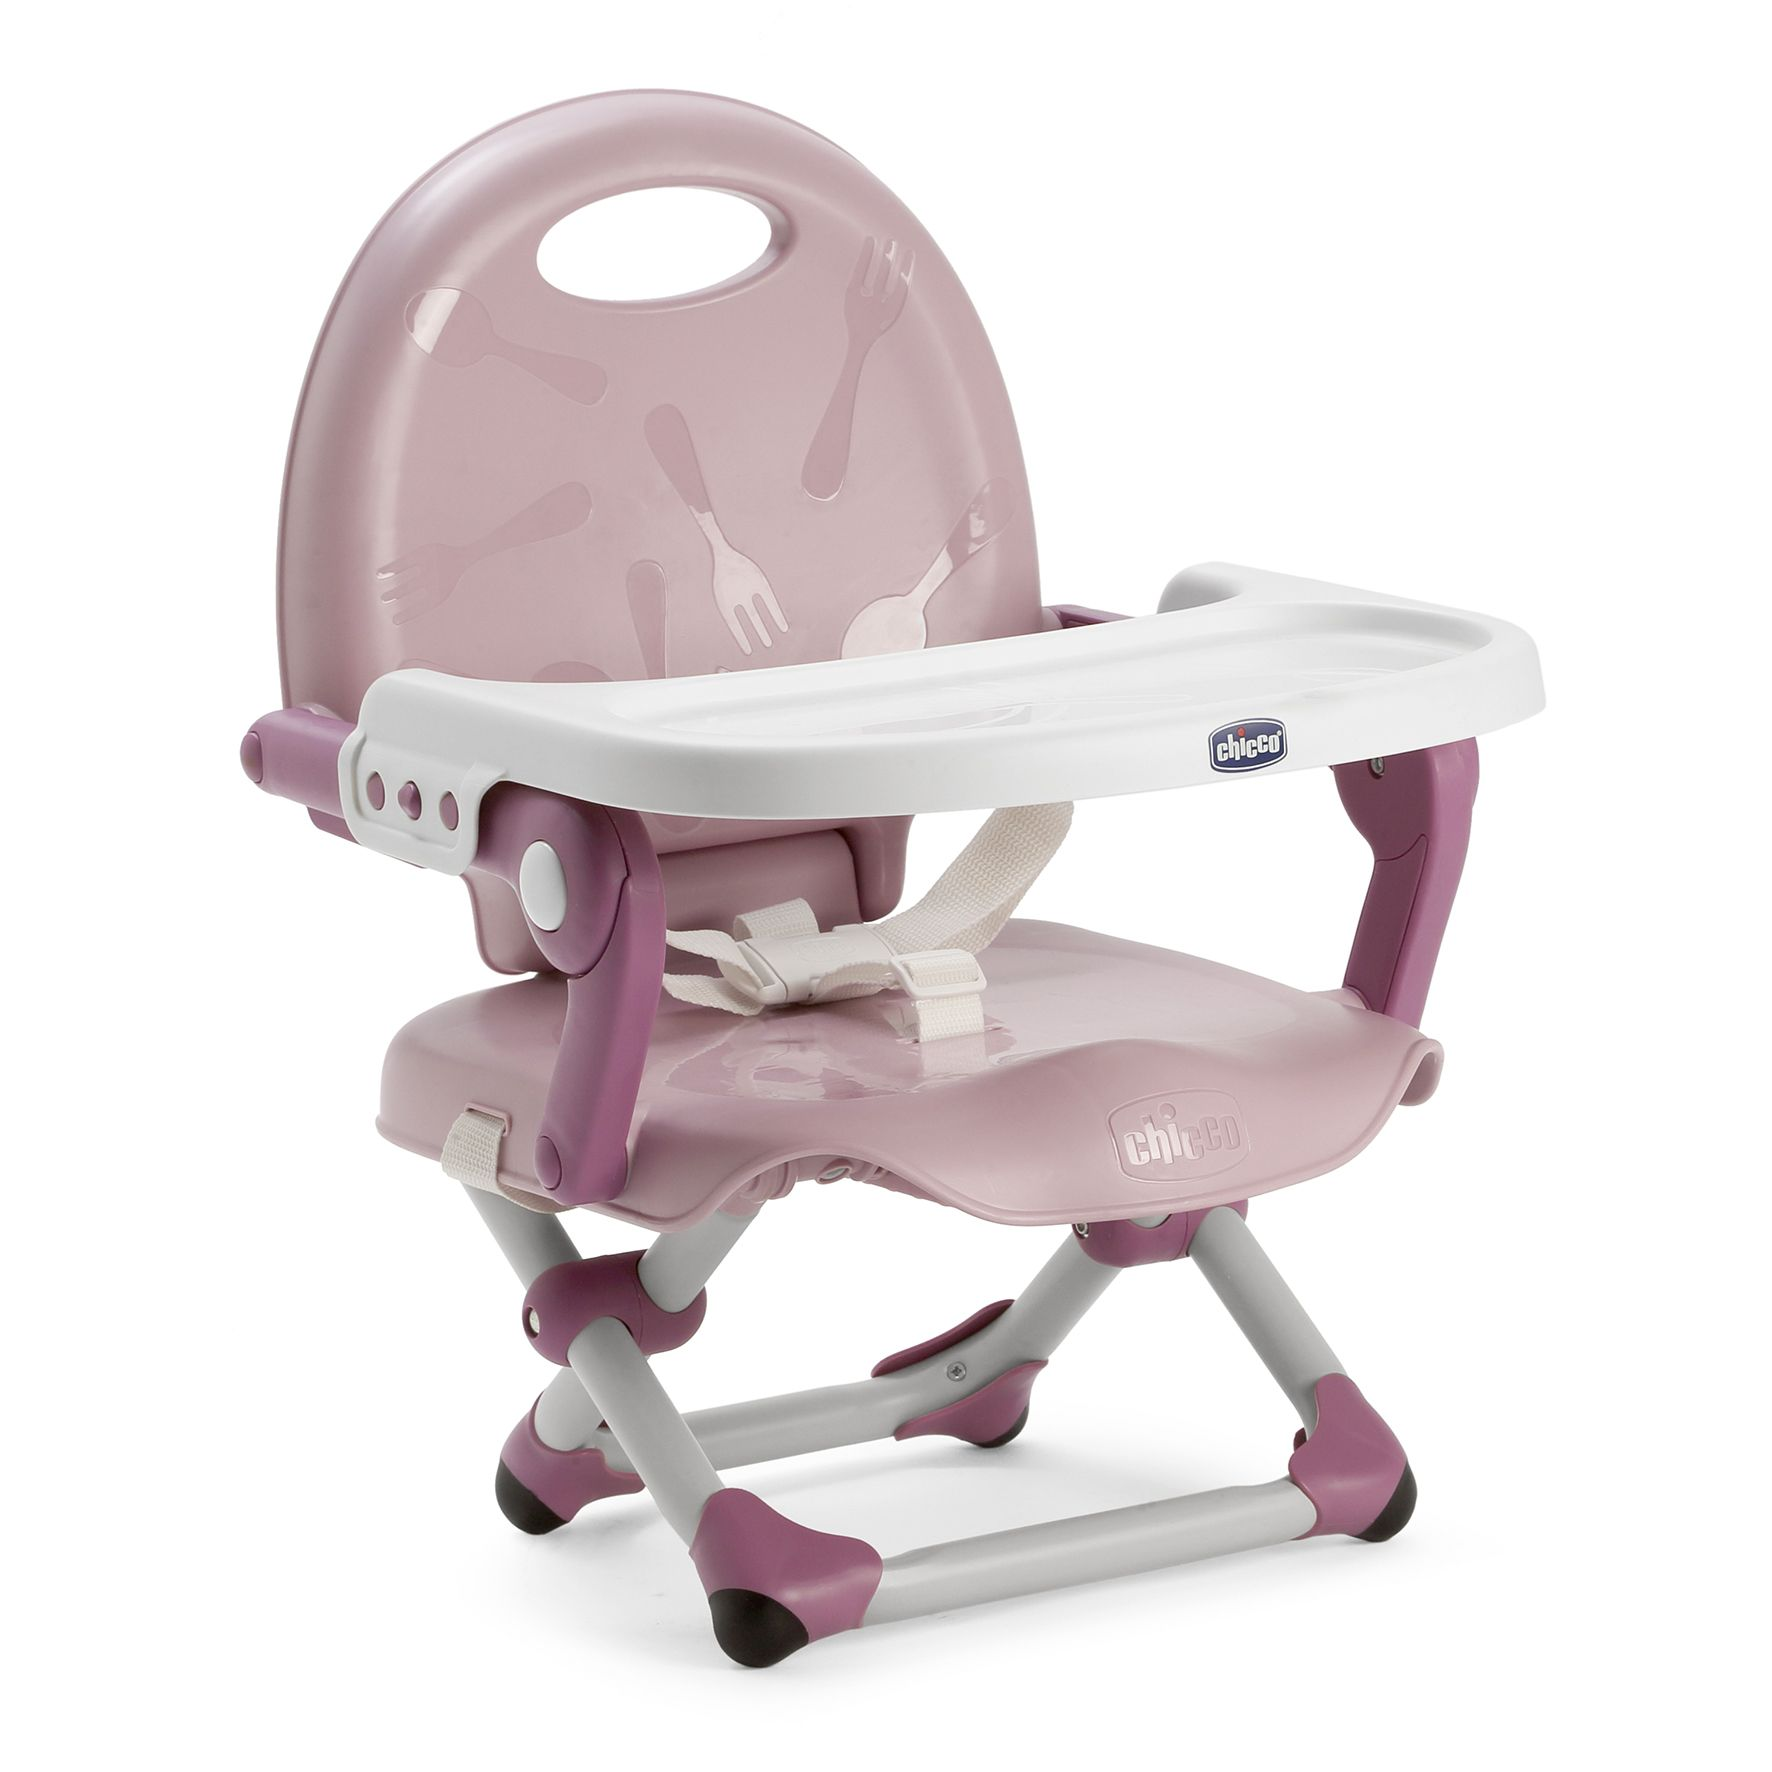 Chicco Booster Seat Pocket Snack 2017 Rose Buy at